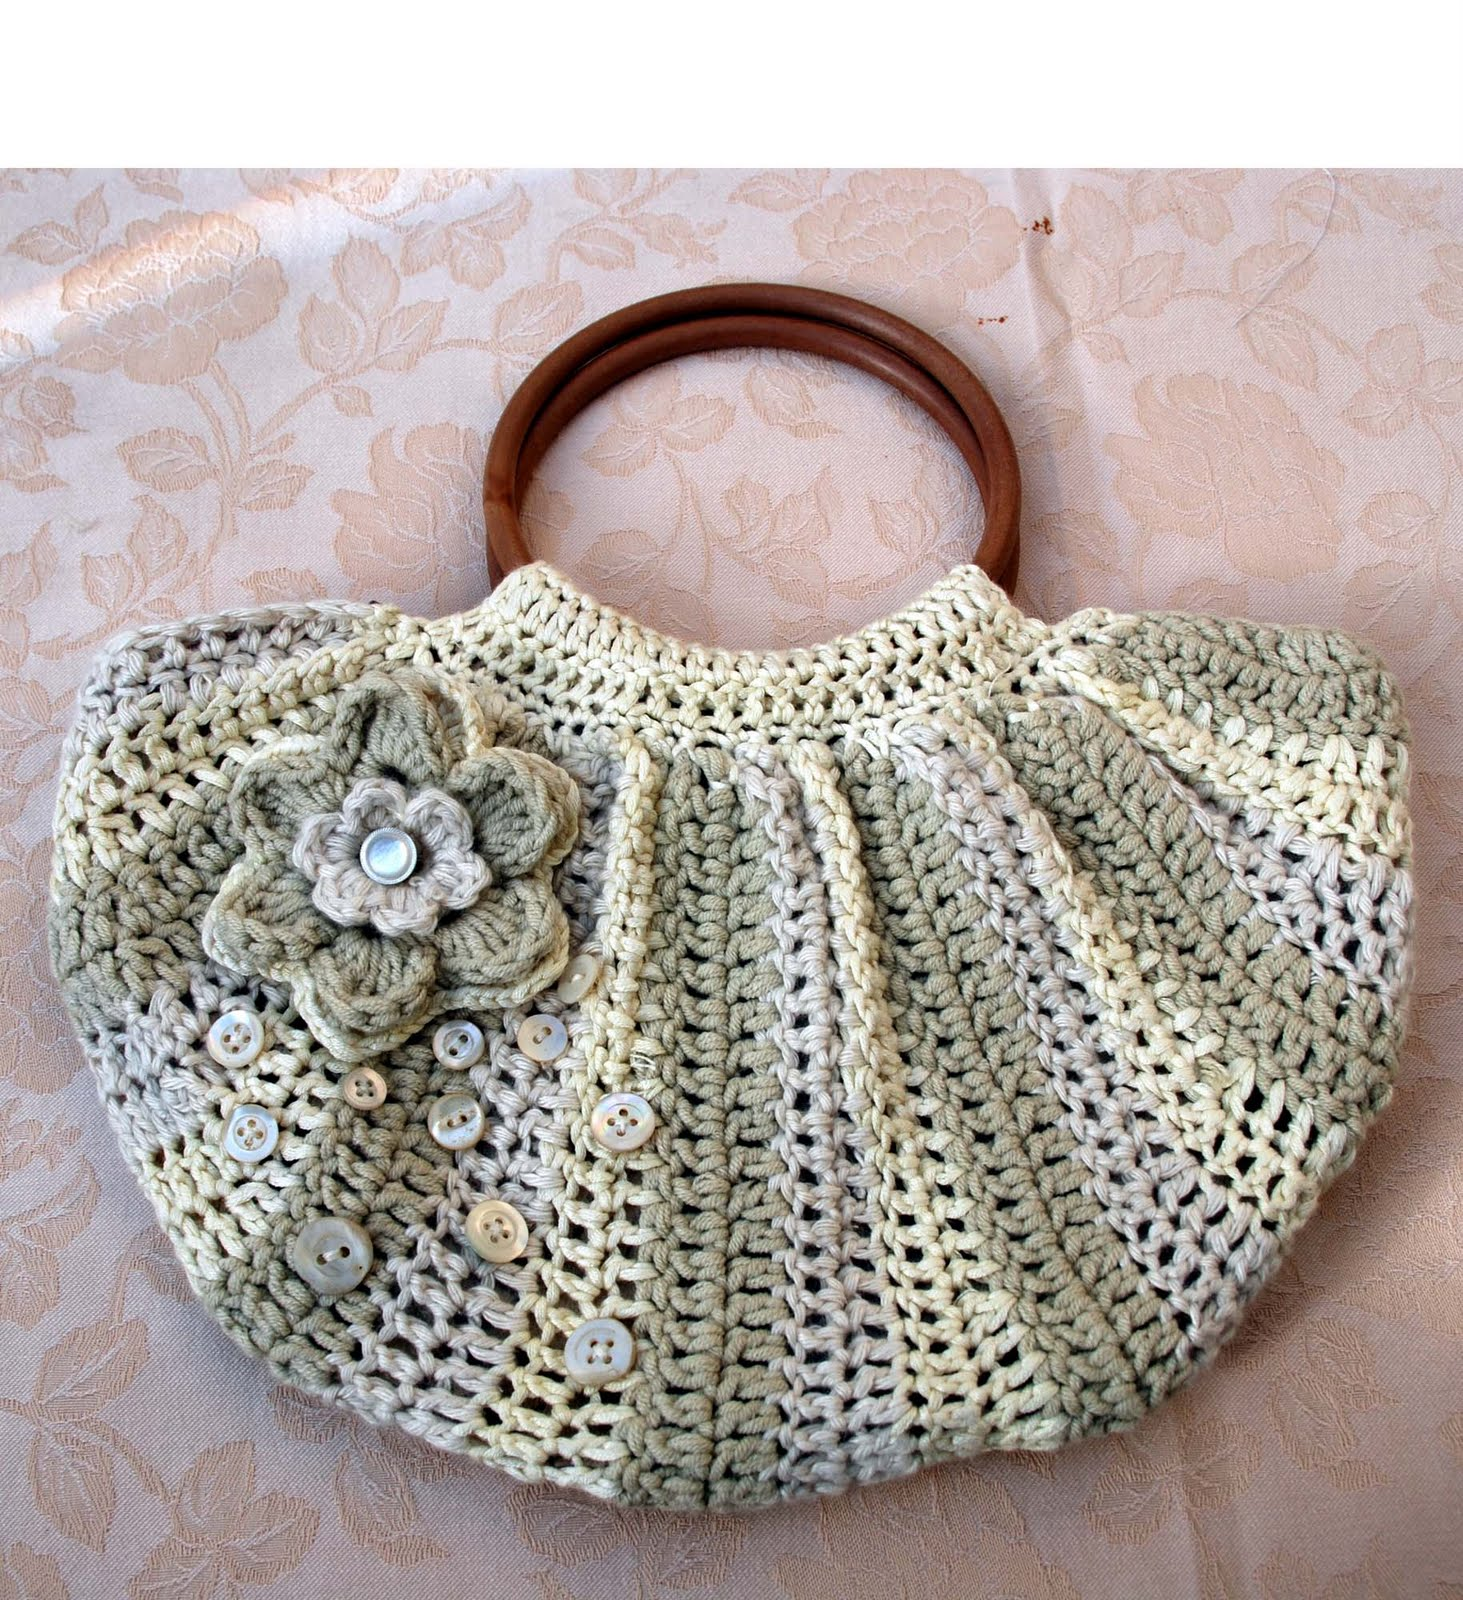 Free Crochet Bag : Knitting Patterns Free: crochet bag